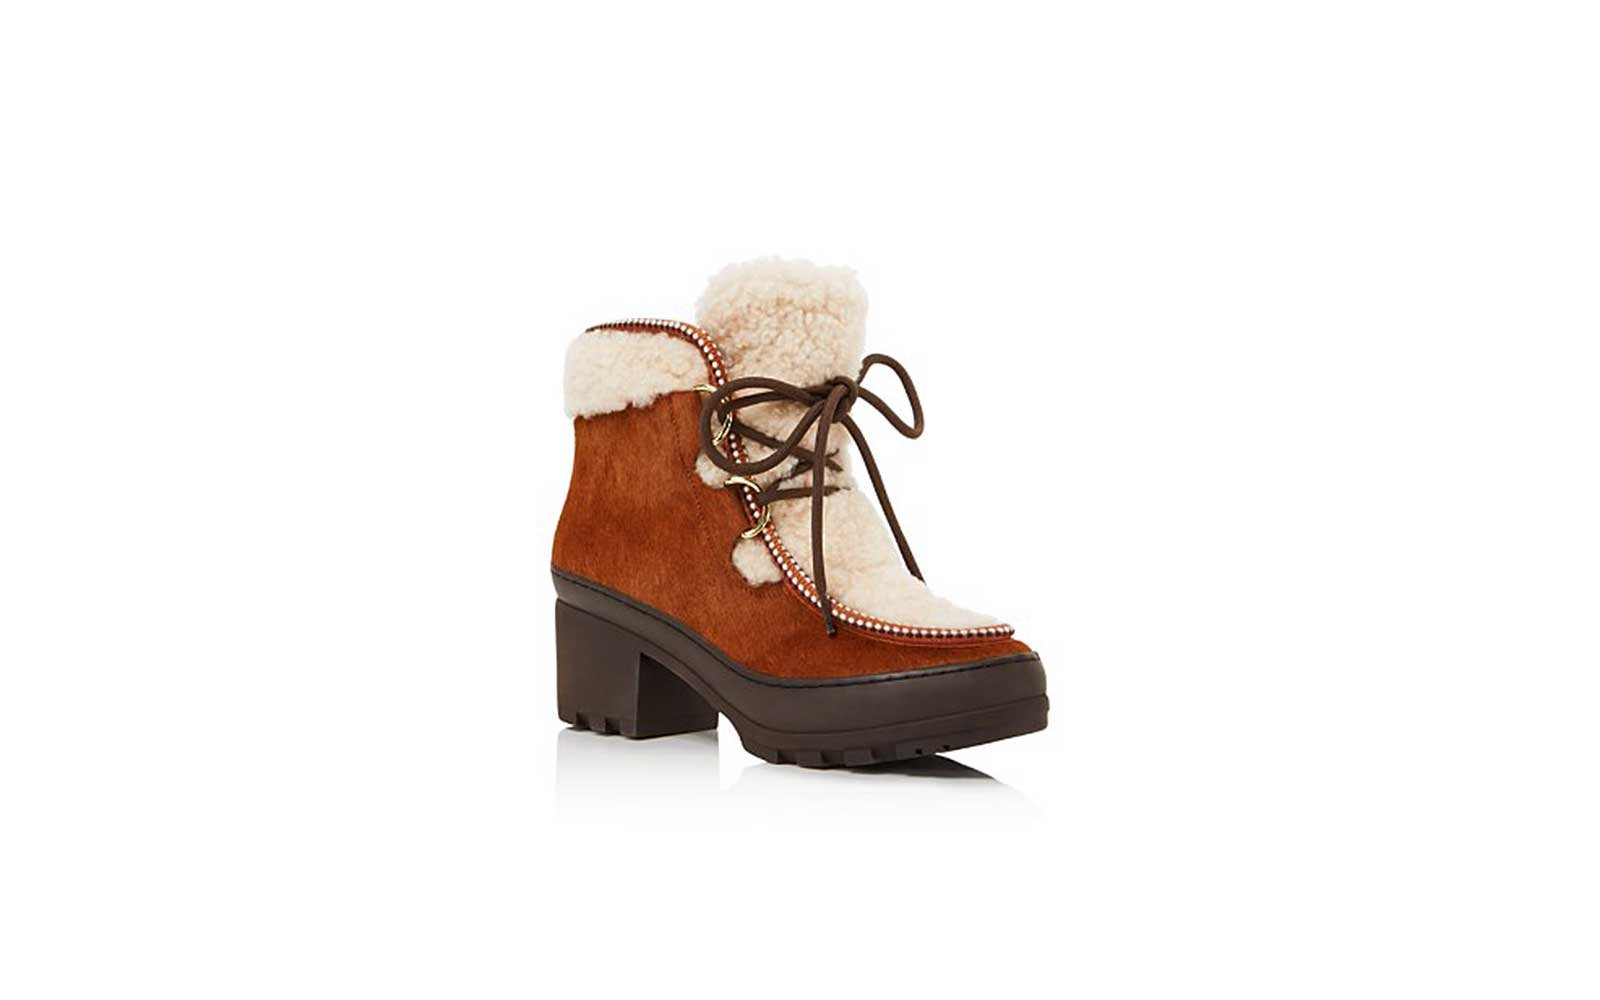 64acb8e59f1 15 Functional and Stylish Snow Boots to Get You Through This Winter ...